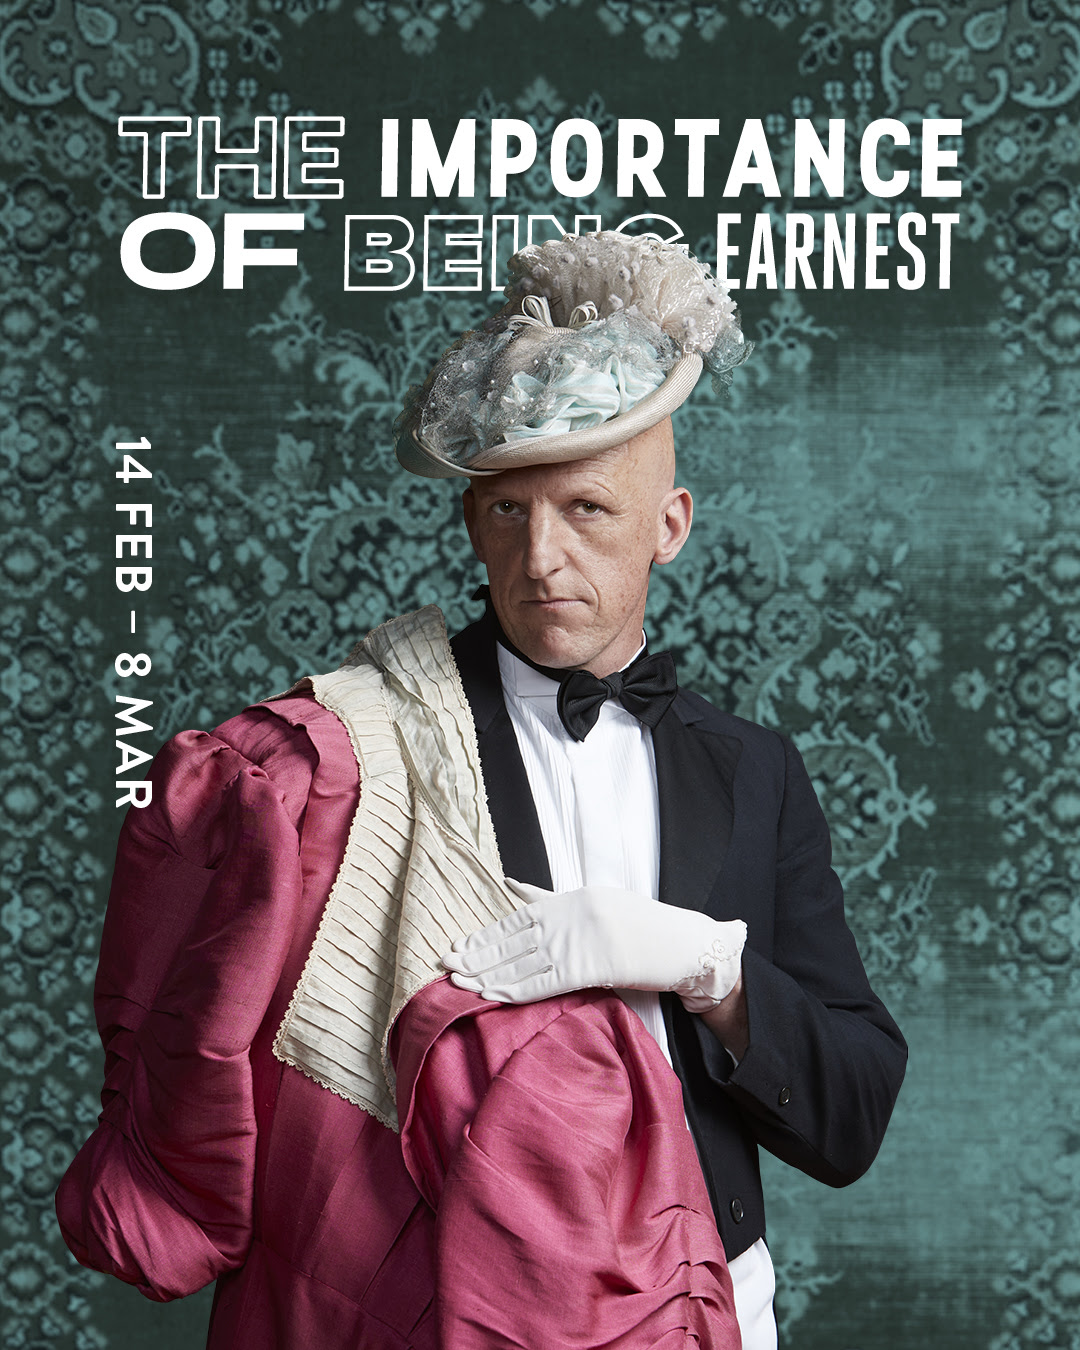 THE IMPORTANCE OF BEING EARNEST - A comedy of lies